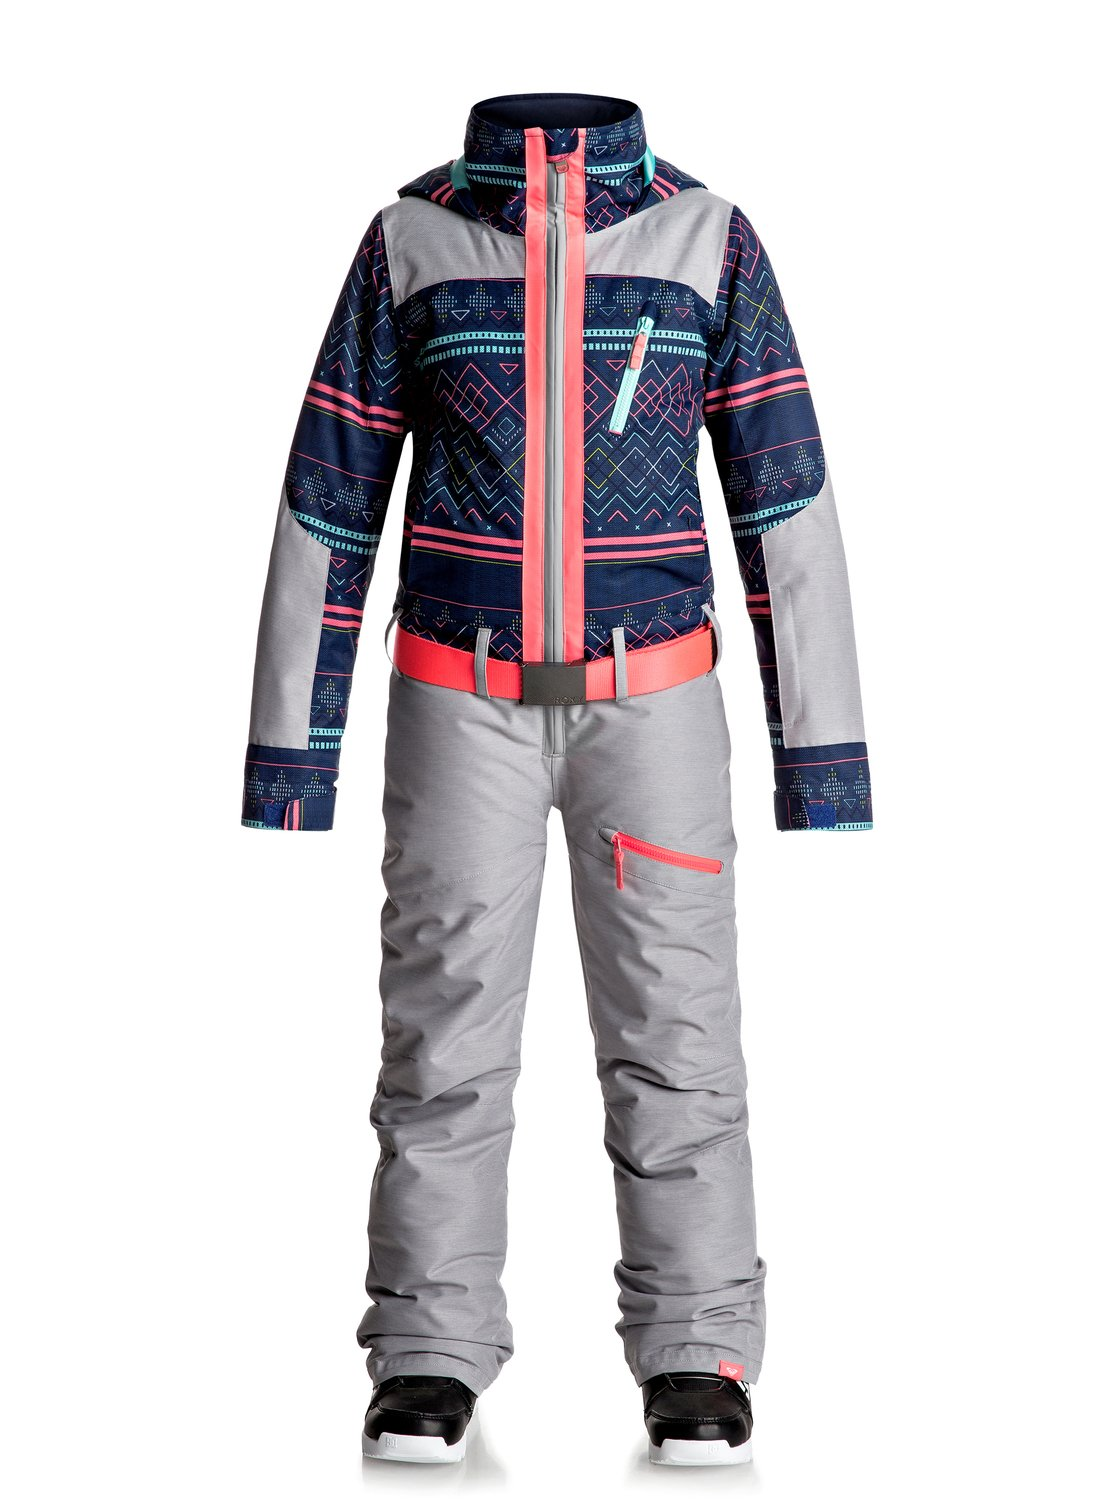 We handpicked this because who doesn't love the quality of Roxy? Before you venture out into the snowy cold, wrap your little doll in Roxy Baby Snow Suits. Your sweet pea is sure to love the snowsuit, thanks to the cuddly soft Teddy Bear Fur fleece lining, warming insulation, and .